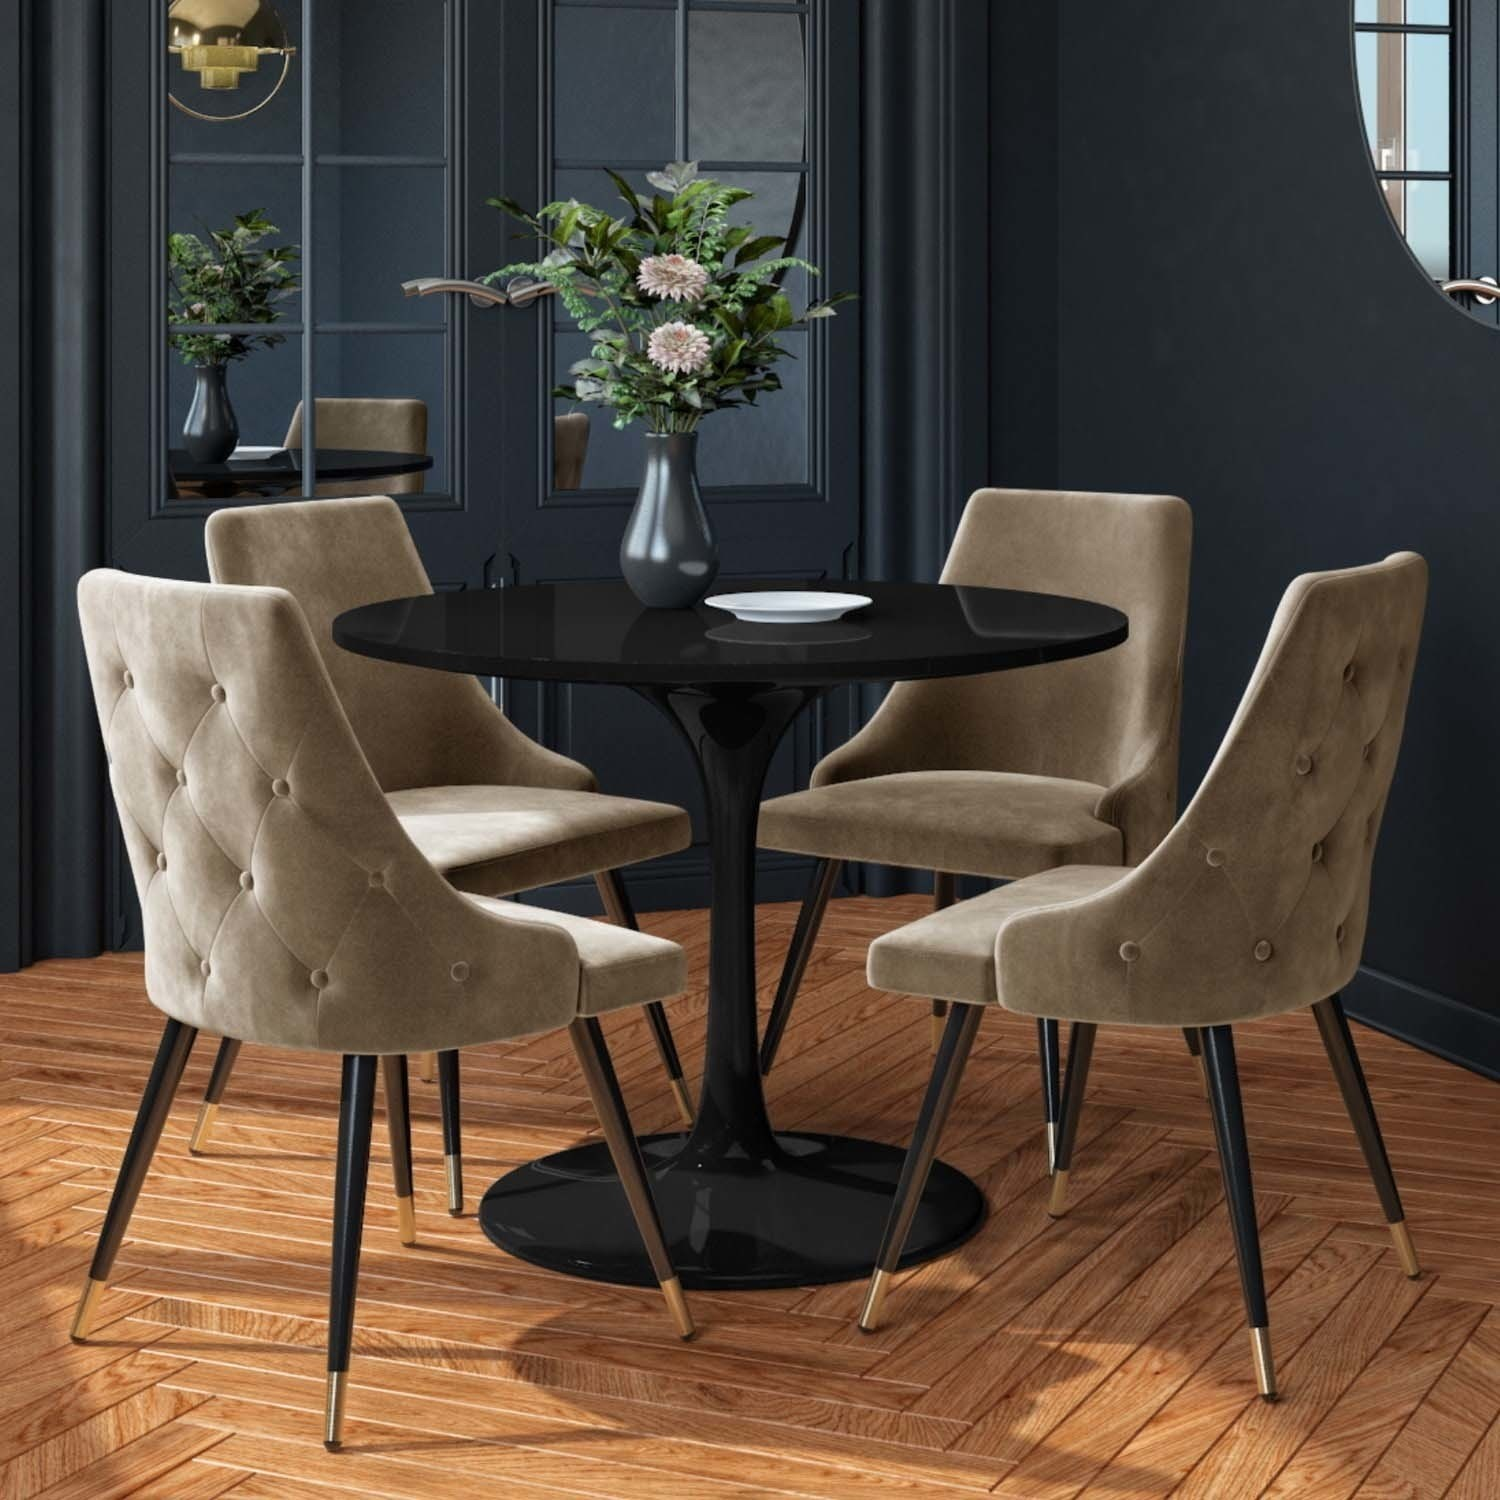 Aura Black Round High Gloss Dining Table With 4 Beige Velvet Dining Chairs Buyitdirect Ie